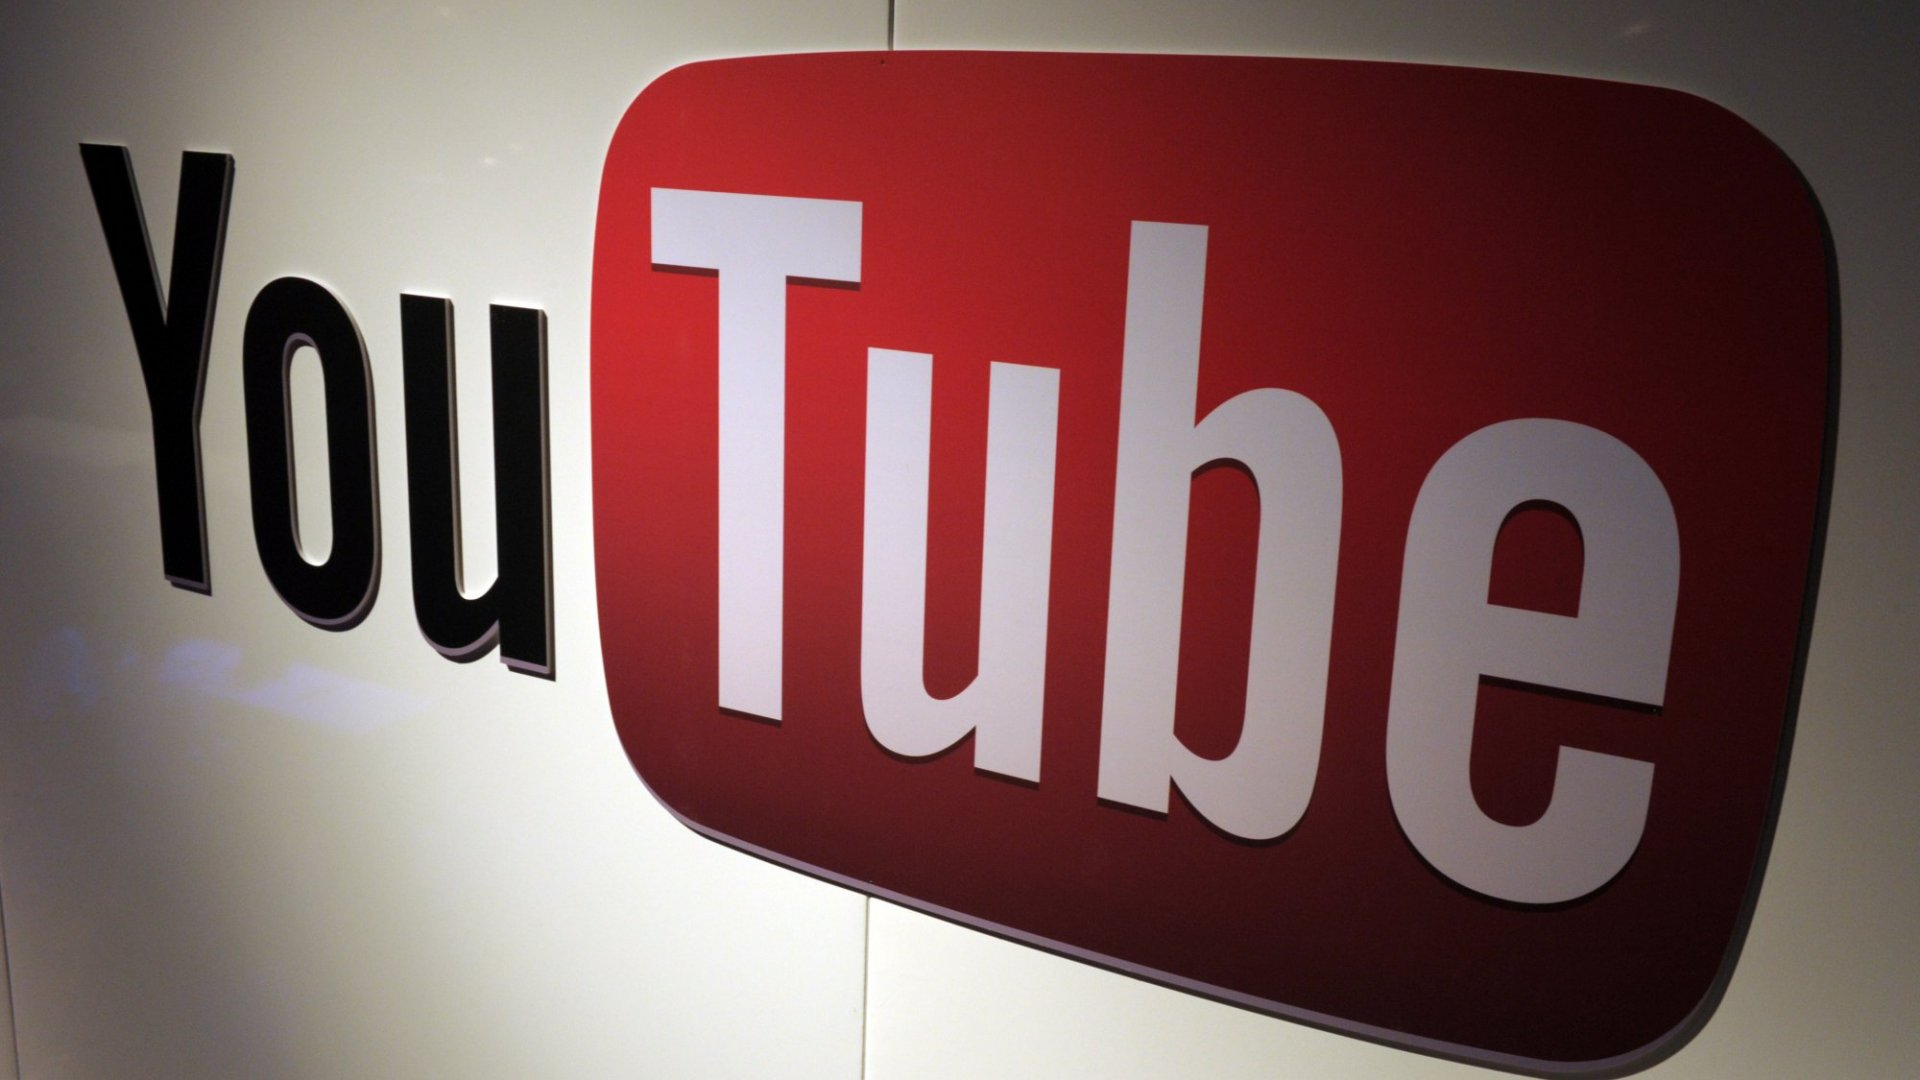 YouTube Apparently Just Did Something Totally Insane on Twitter. (Here's What Happened When People Complained)